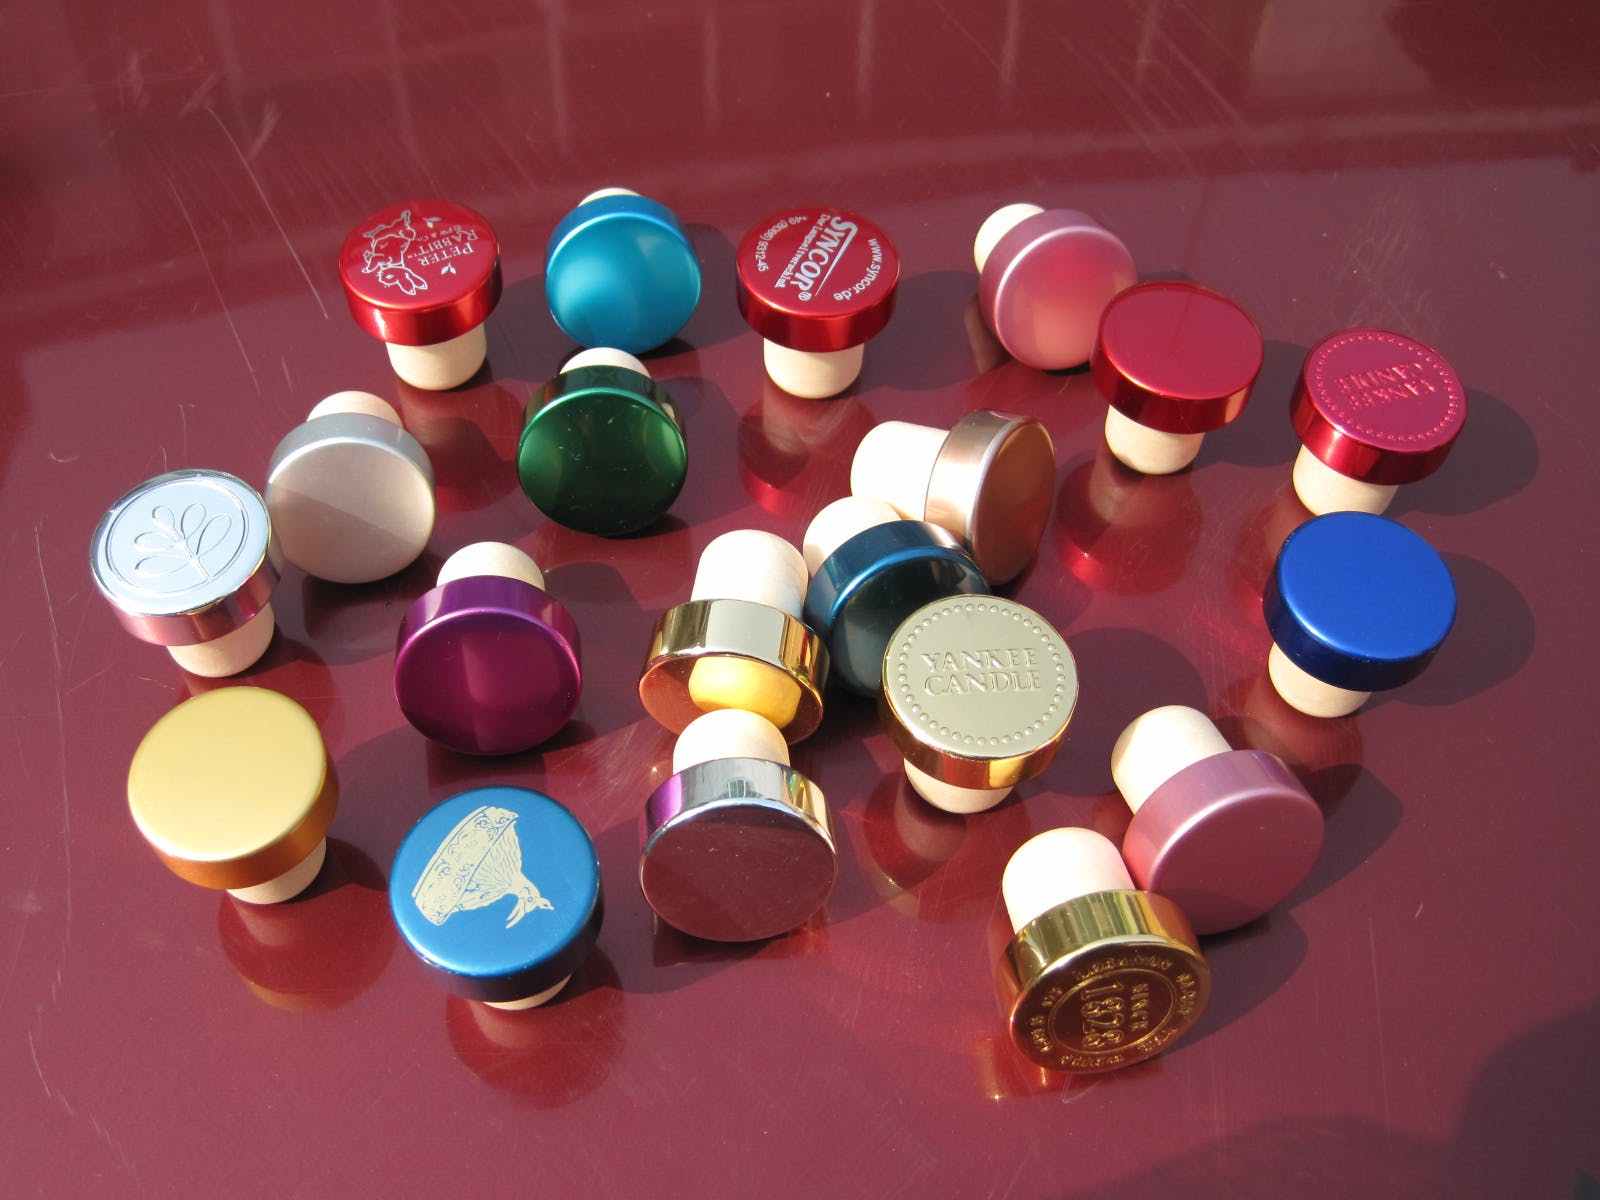 Caps Bottle cap sold by FOTA Packaging Group Co., Ltd.